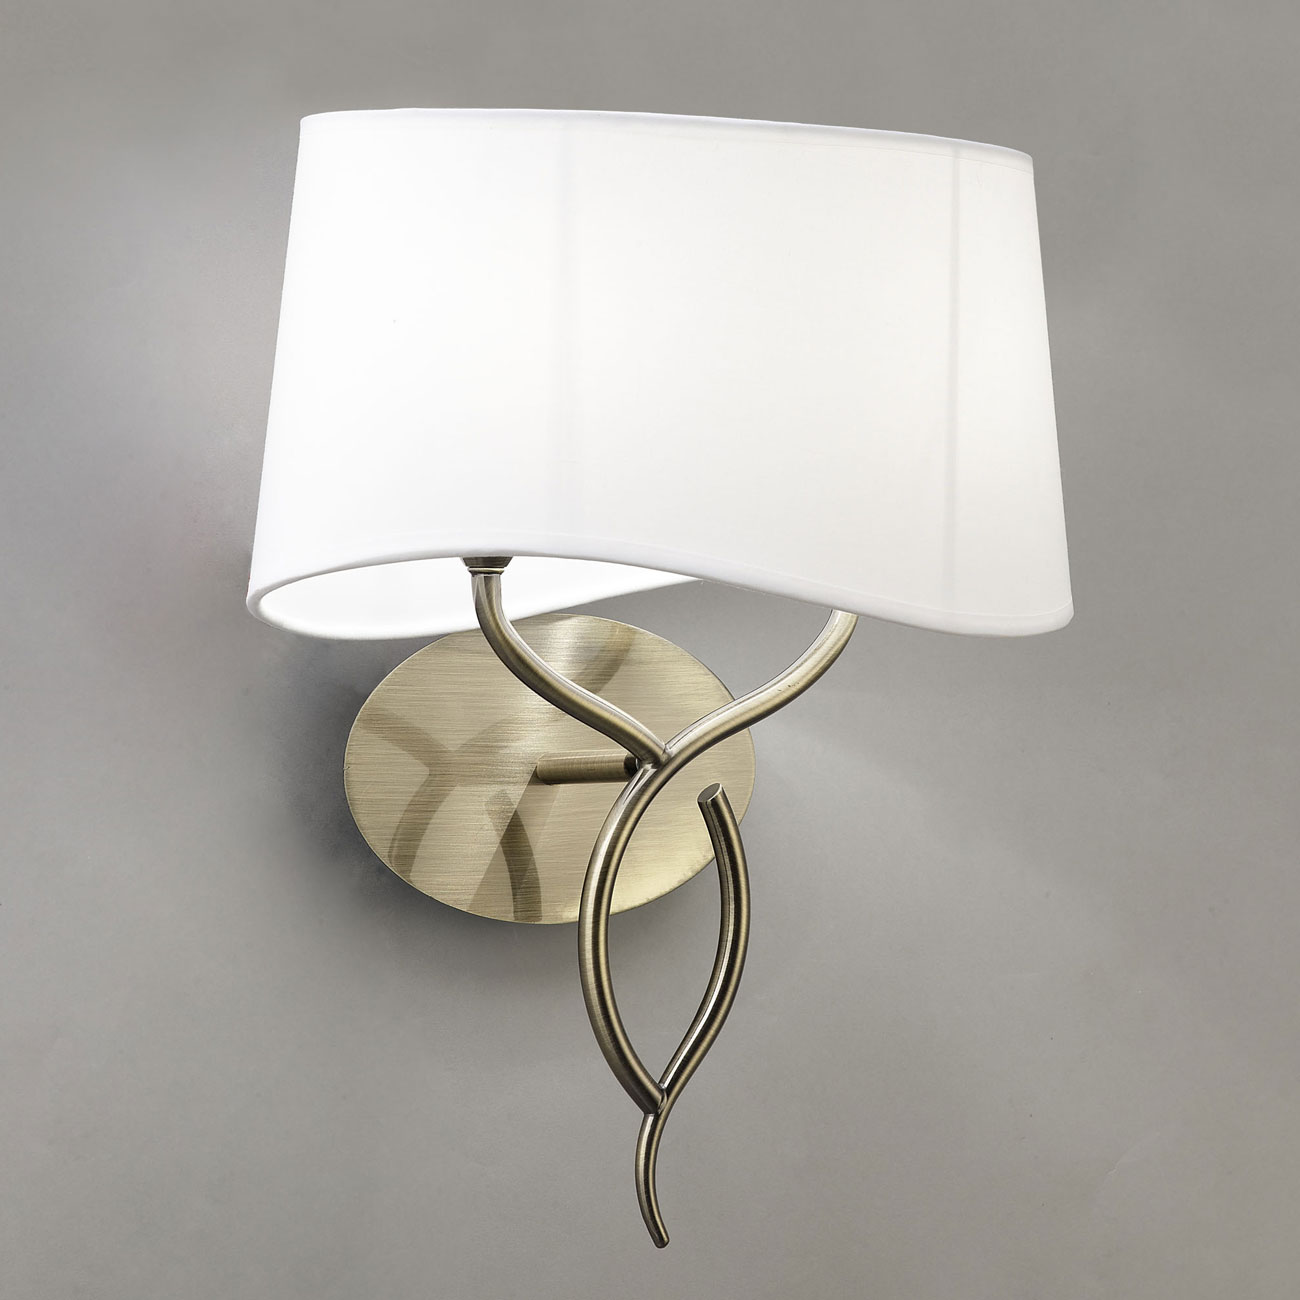 Ninette Wall Lamp 2xE14 20w leather white lampshade